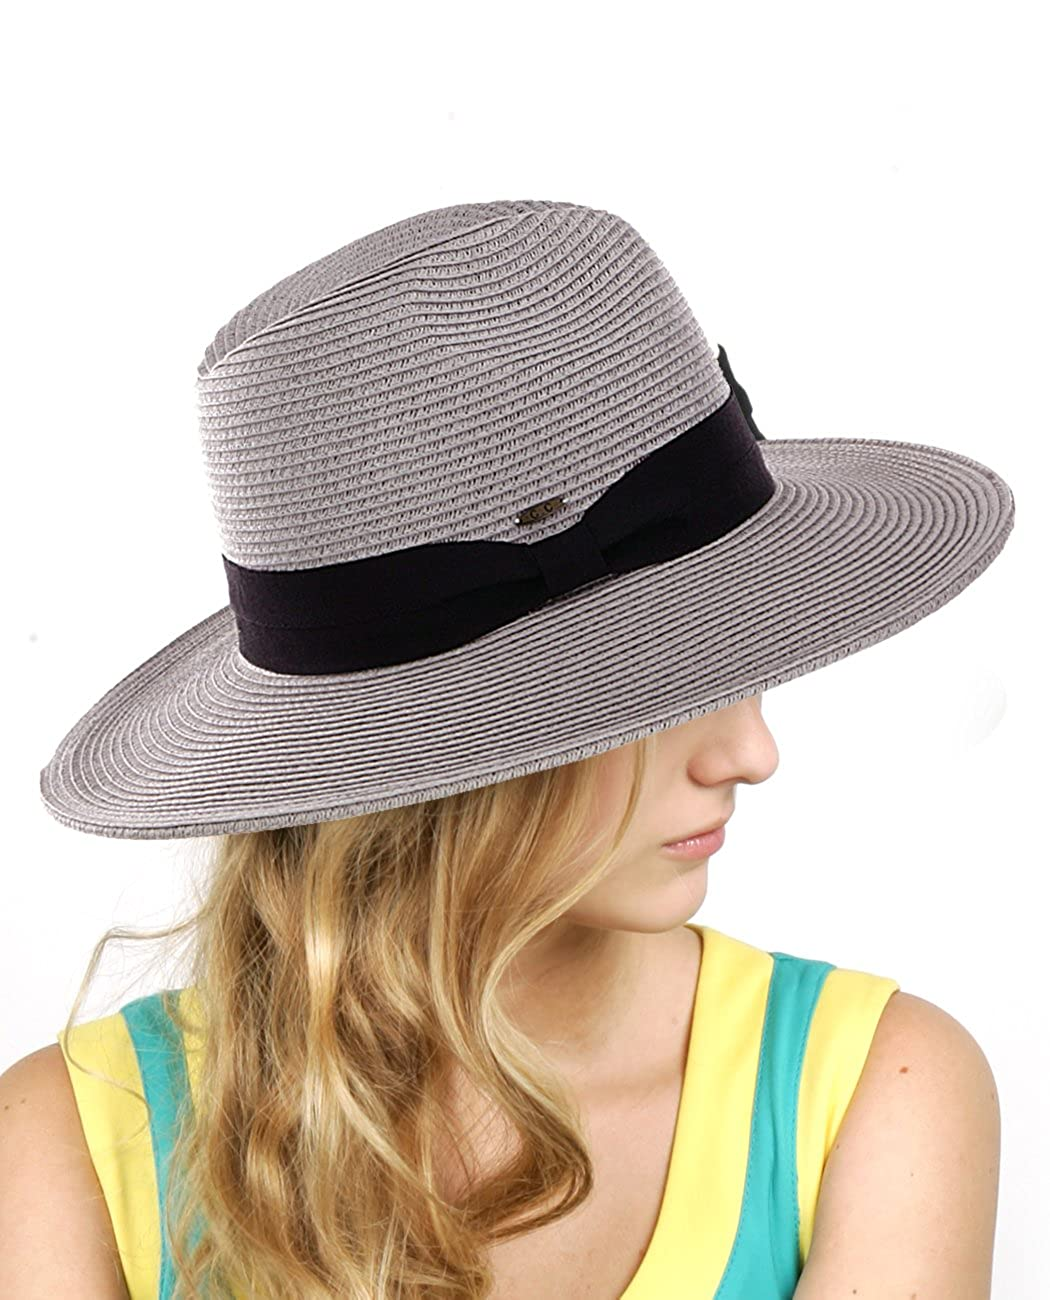 NYfashion101 Lightweight Solid Color Band Braided Panama Fedora Sun Hat ST02-BK